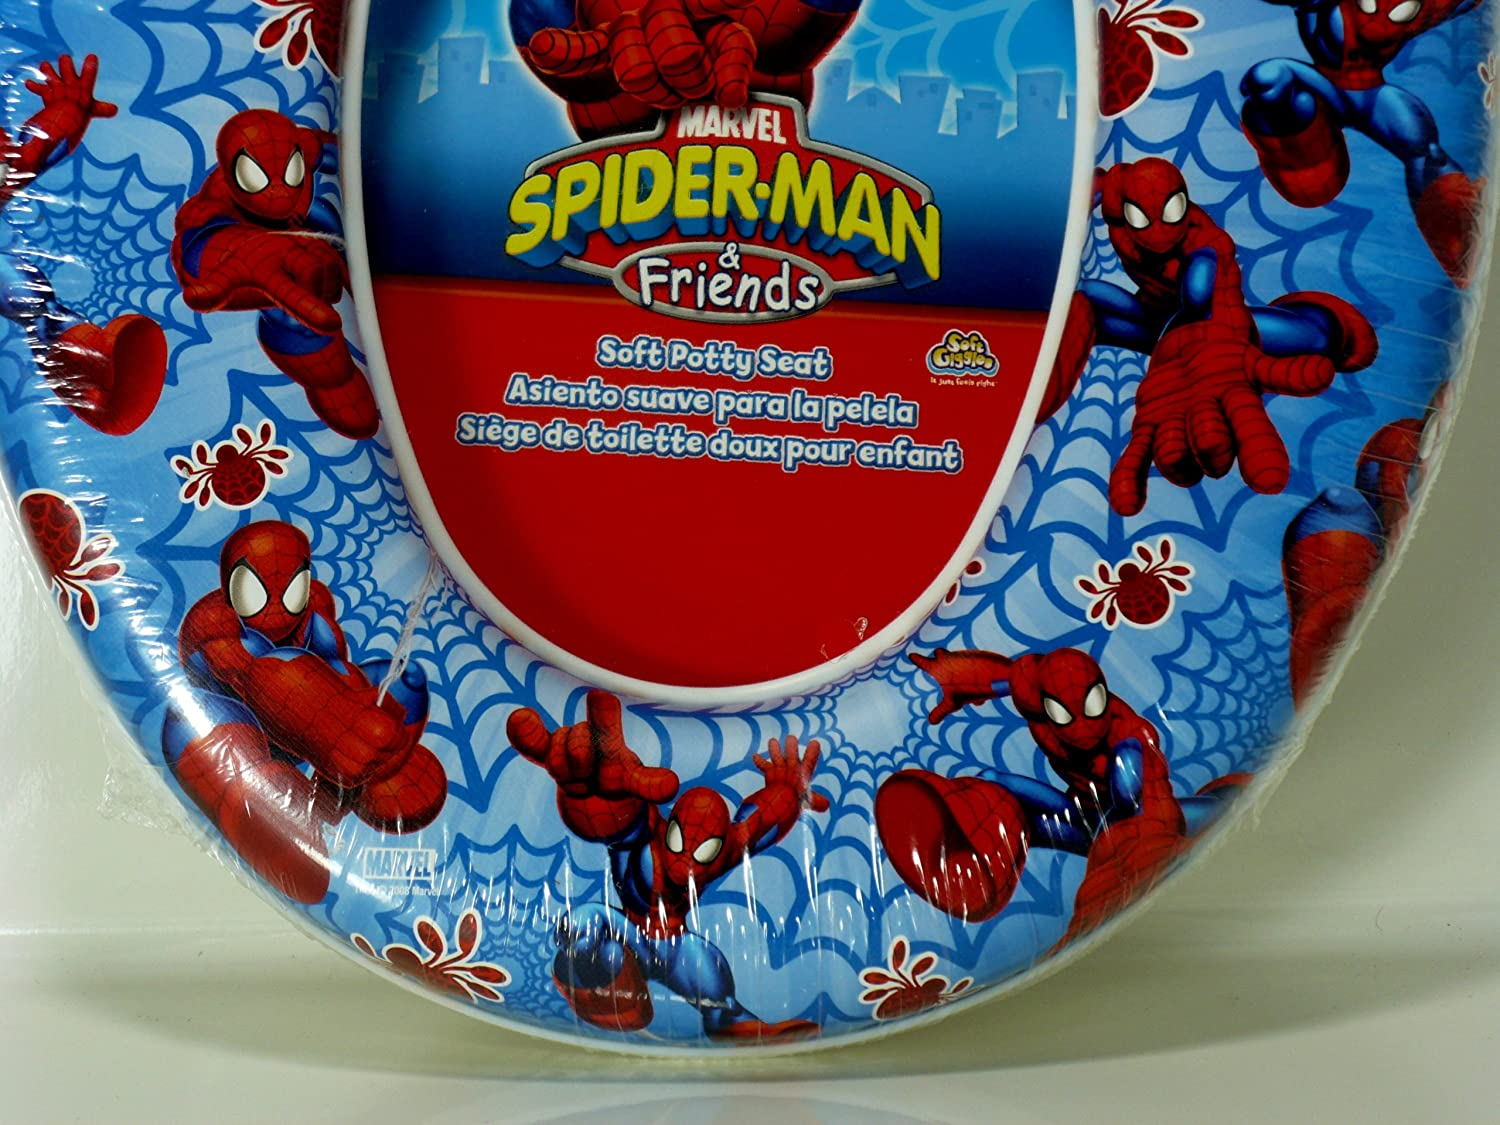 Amazon.com : Spiderman & Friends Soft Potty Seat : Toilet Training Seat Covers : Baby